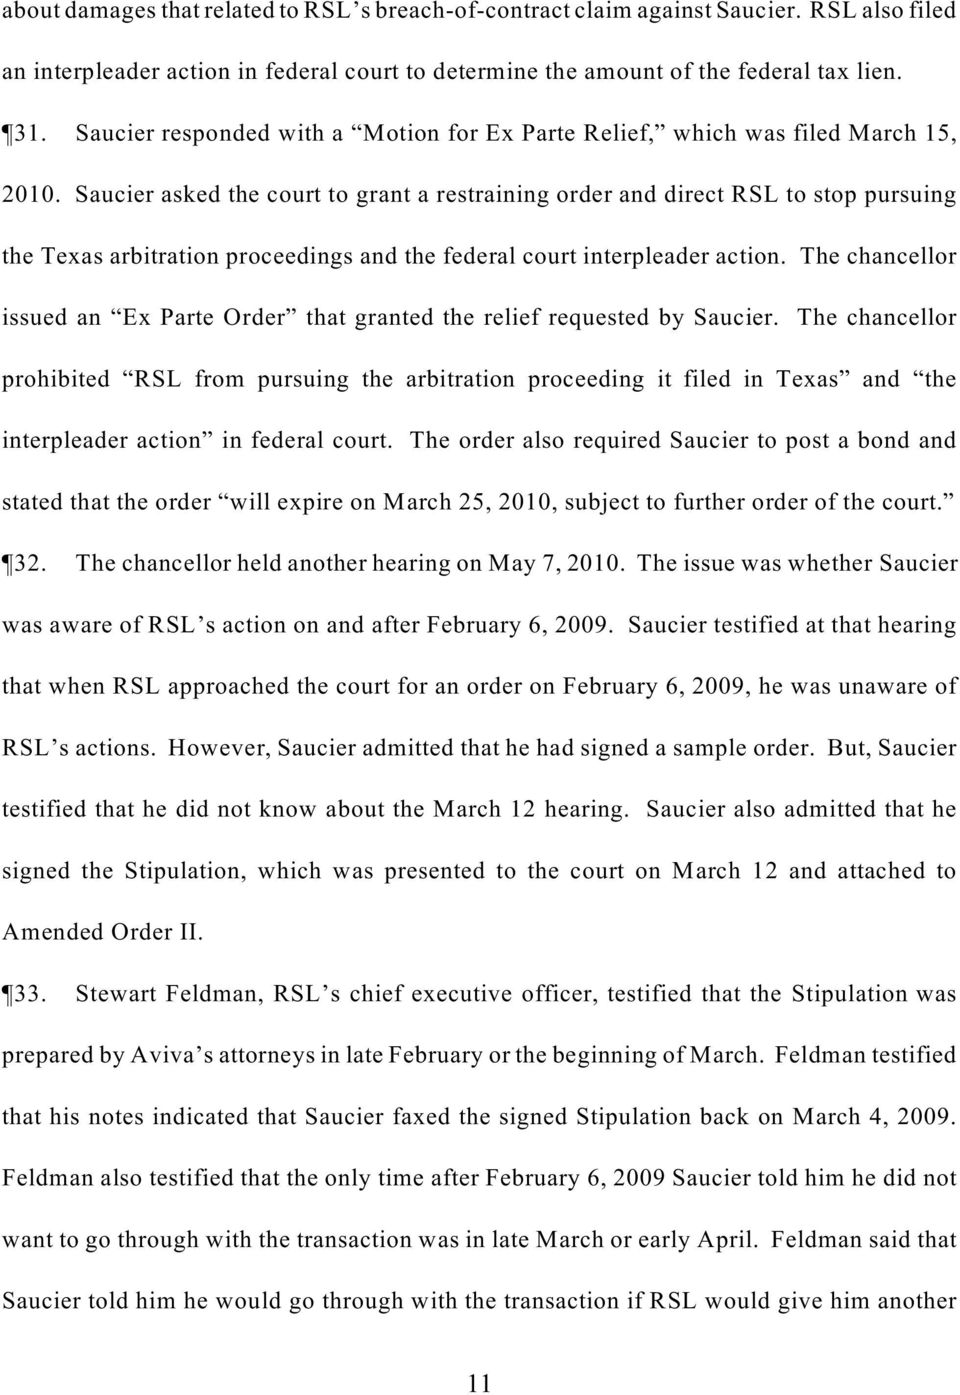 Saucier asked the court to grant a restraining order and direct RSL to stop pursuing the Texas arbitration proceedings and the federal court interpleader action.